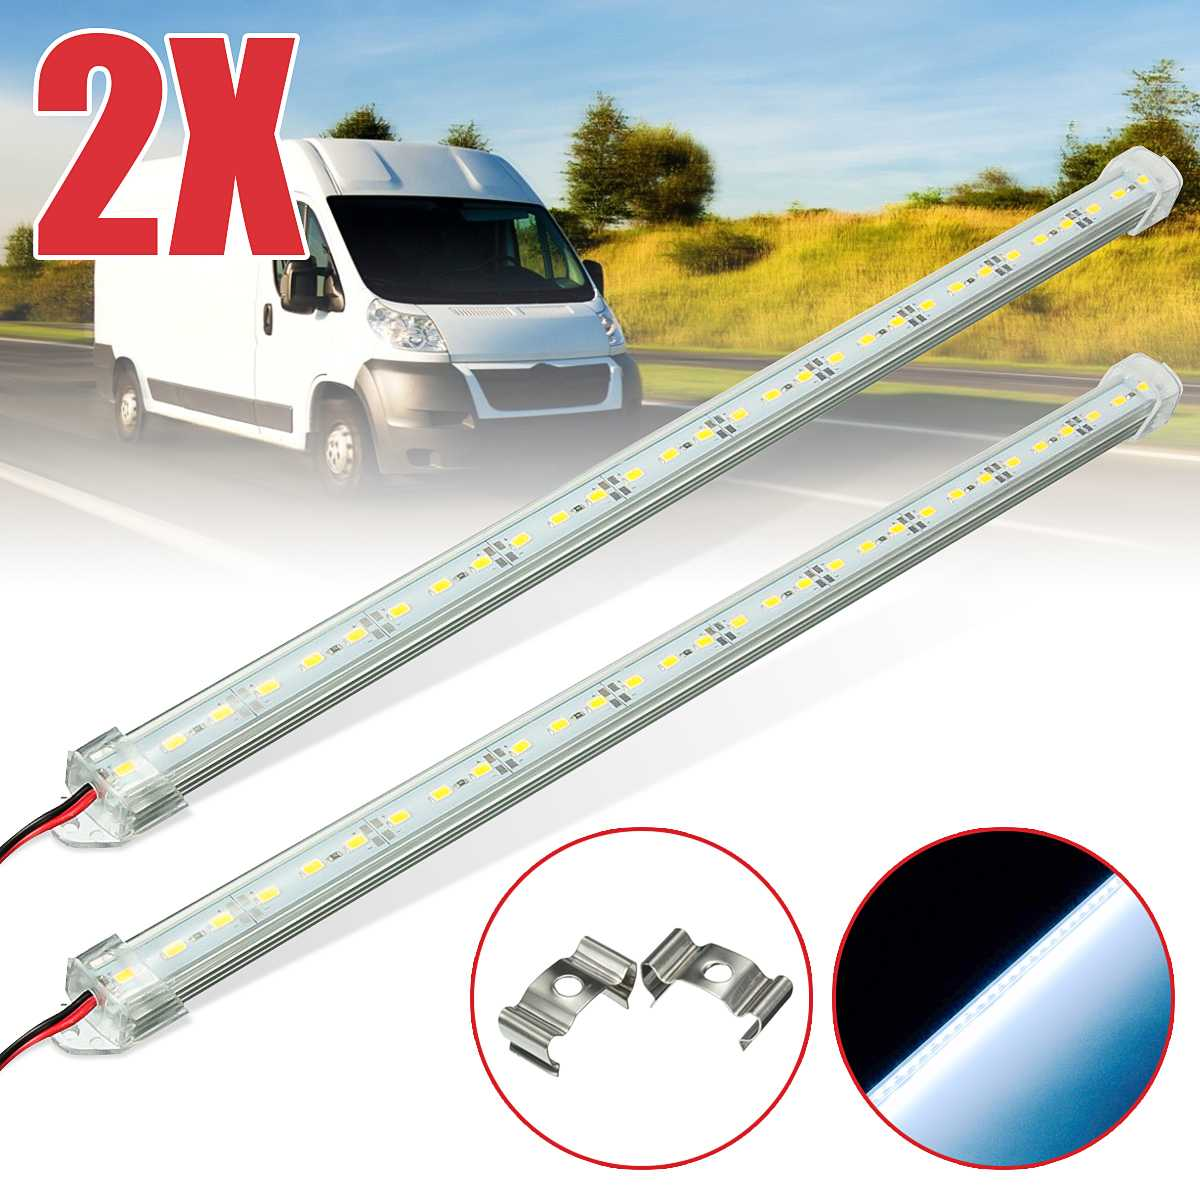 1/2/4pcs 12V 40cm 30 LED 5630 LED Interior Strip Bar Light Car Van Caravan Boat Truck Trailer lamp For Outdoor Camping Home